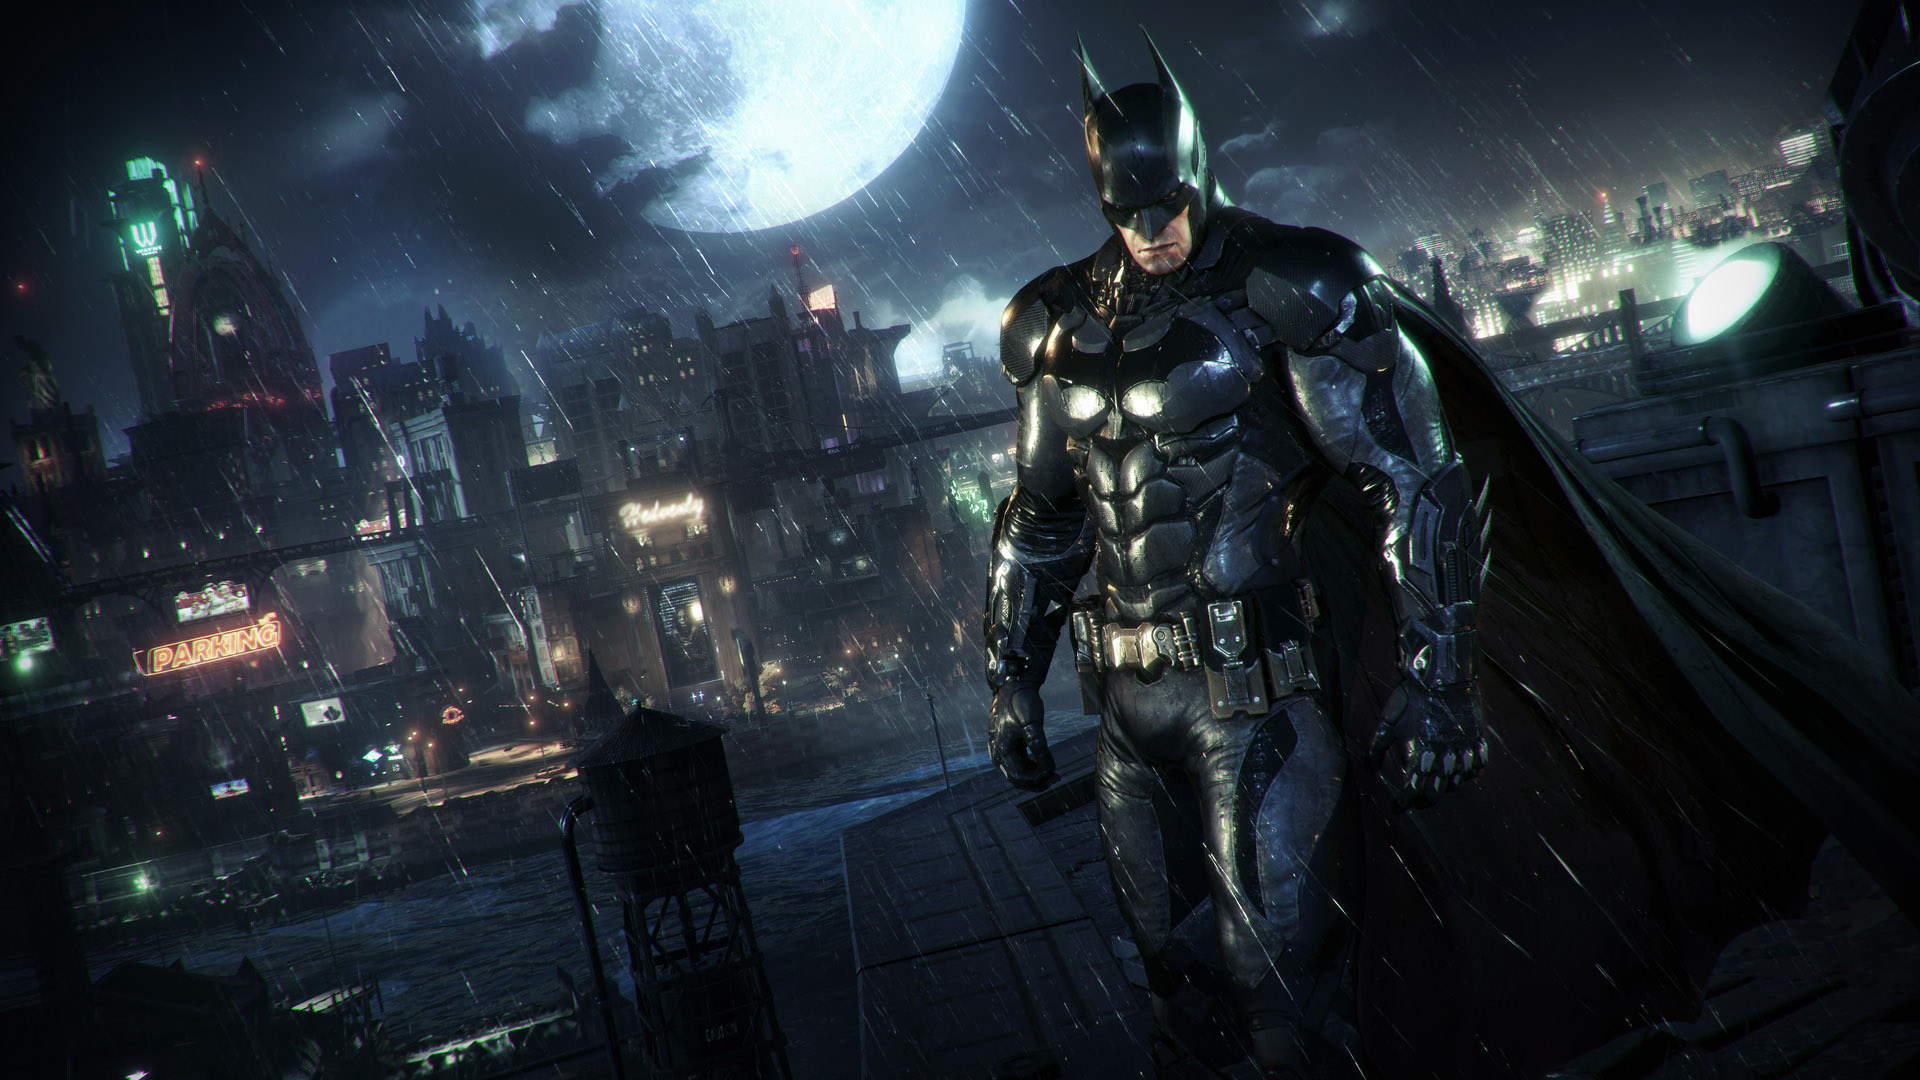 Batman Arkham Knight Computer Wallpapers Desktop Backgrounds 1920x1080